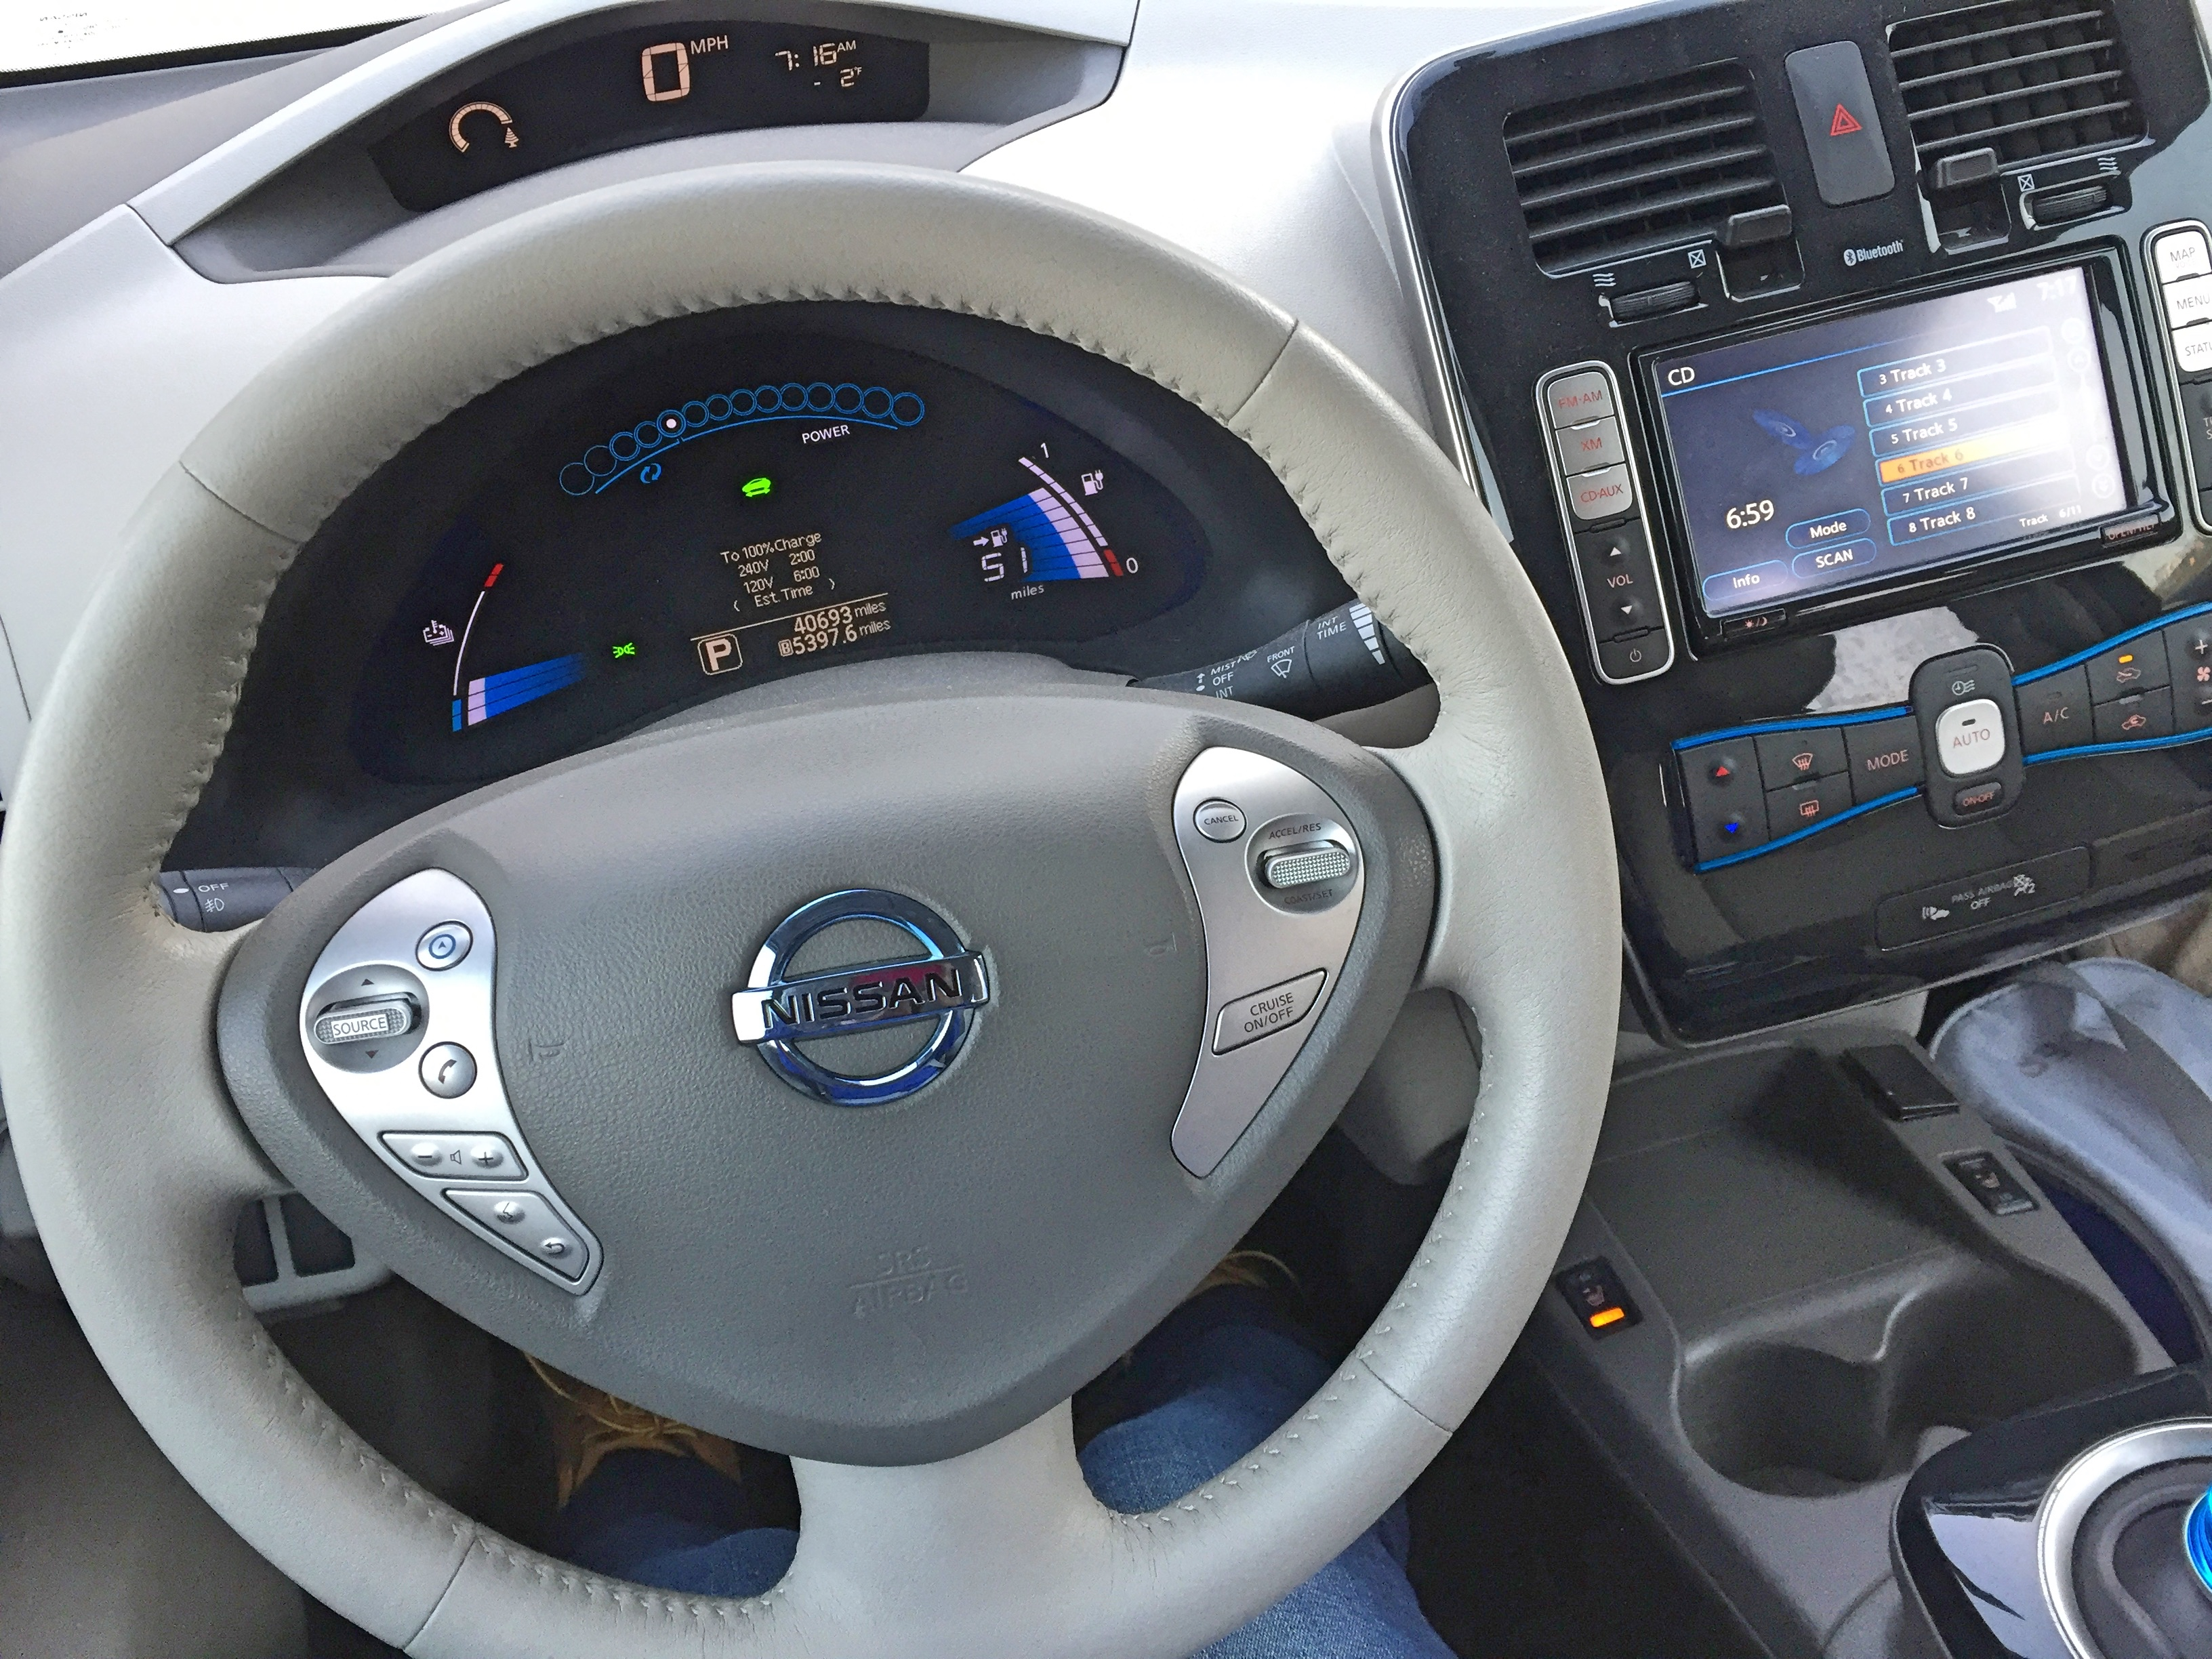 test leaf of car review sl nissan electric expert drive